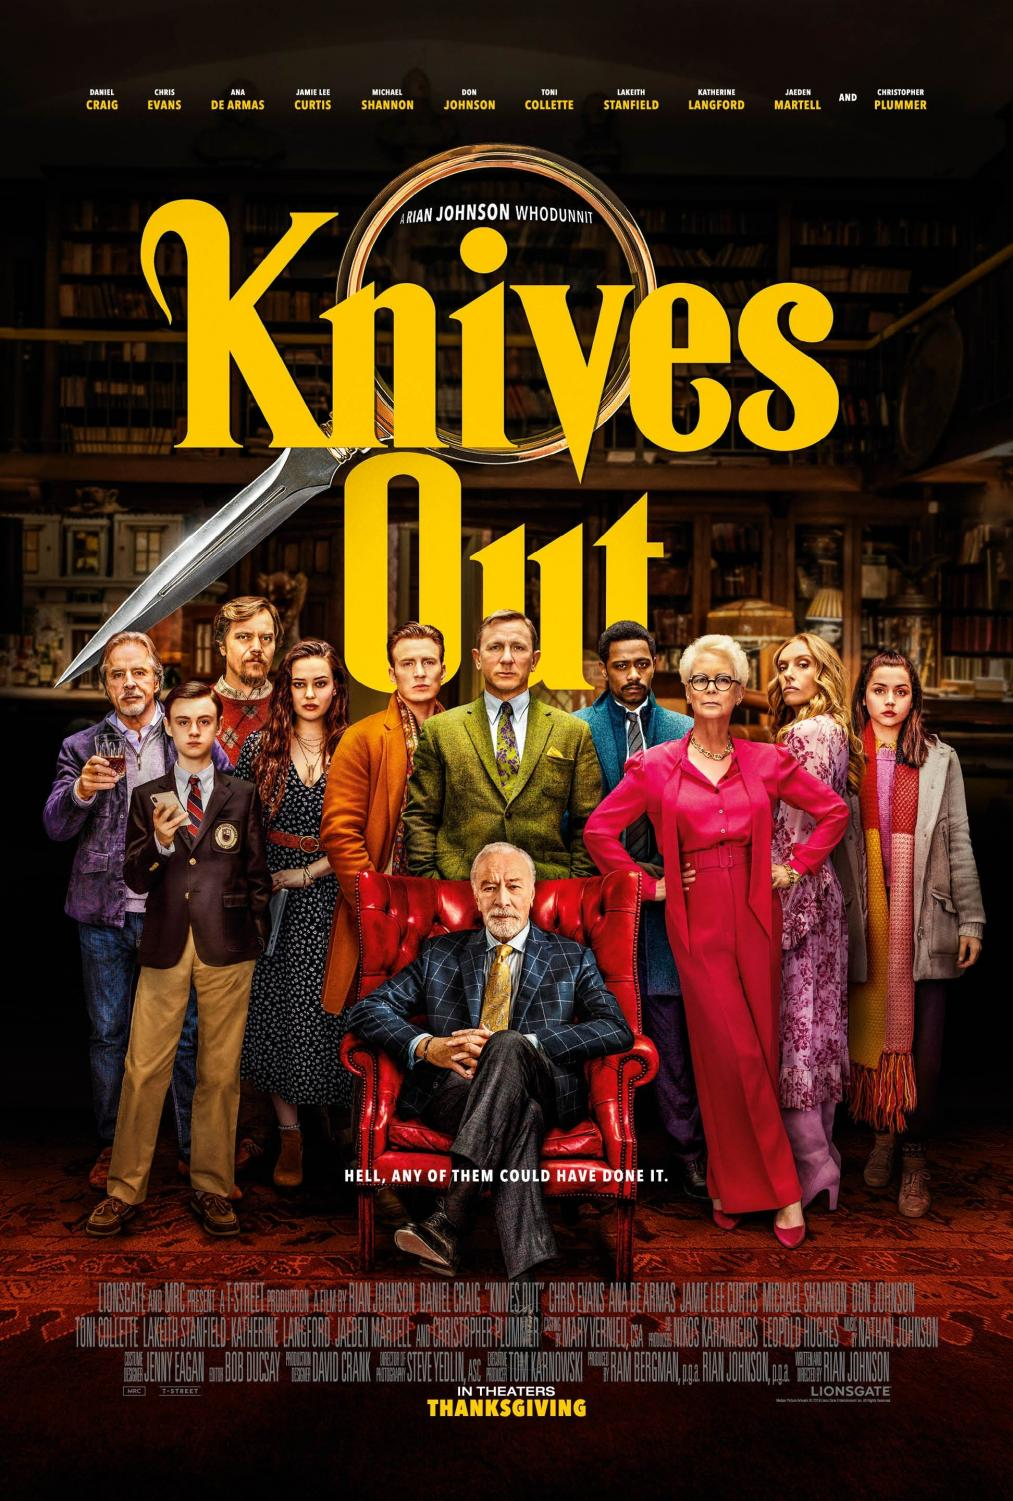 Published under fair use. In theaters since Thanksgiving, Knives Out has attracted attention from fans and critics alike.